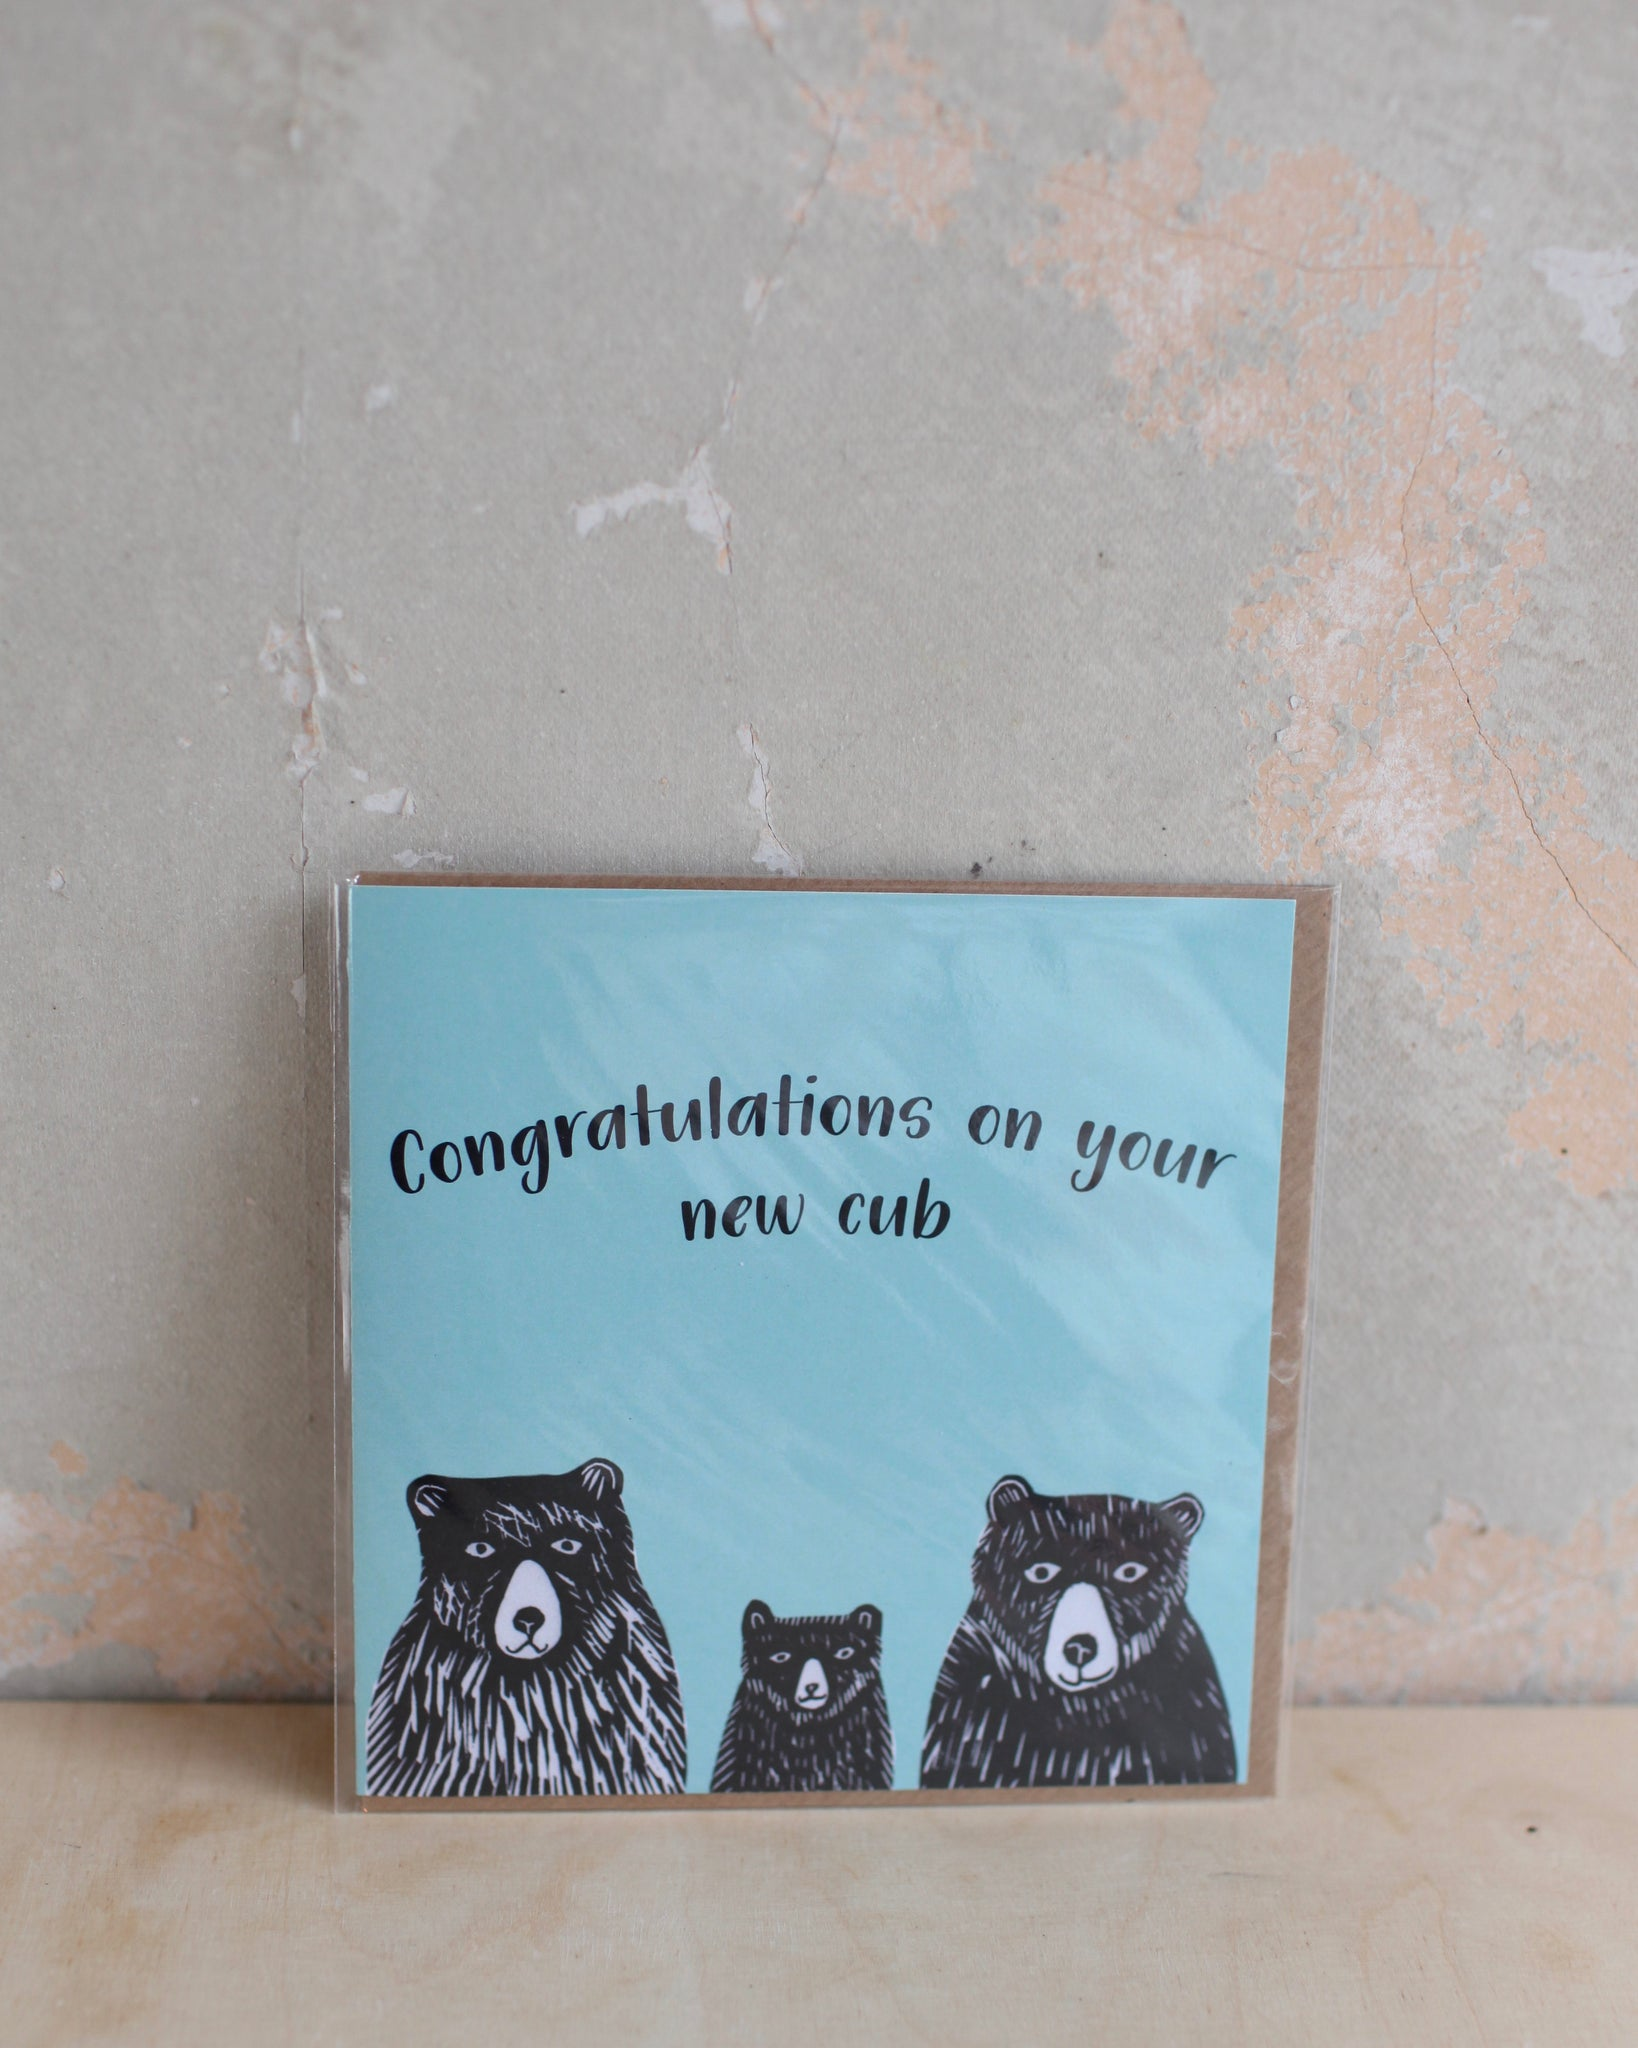 'New Cub' Greetings Card